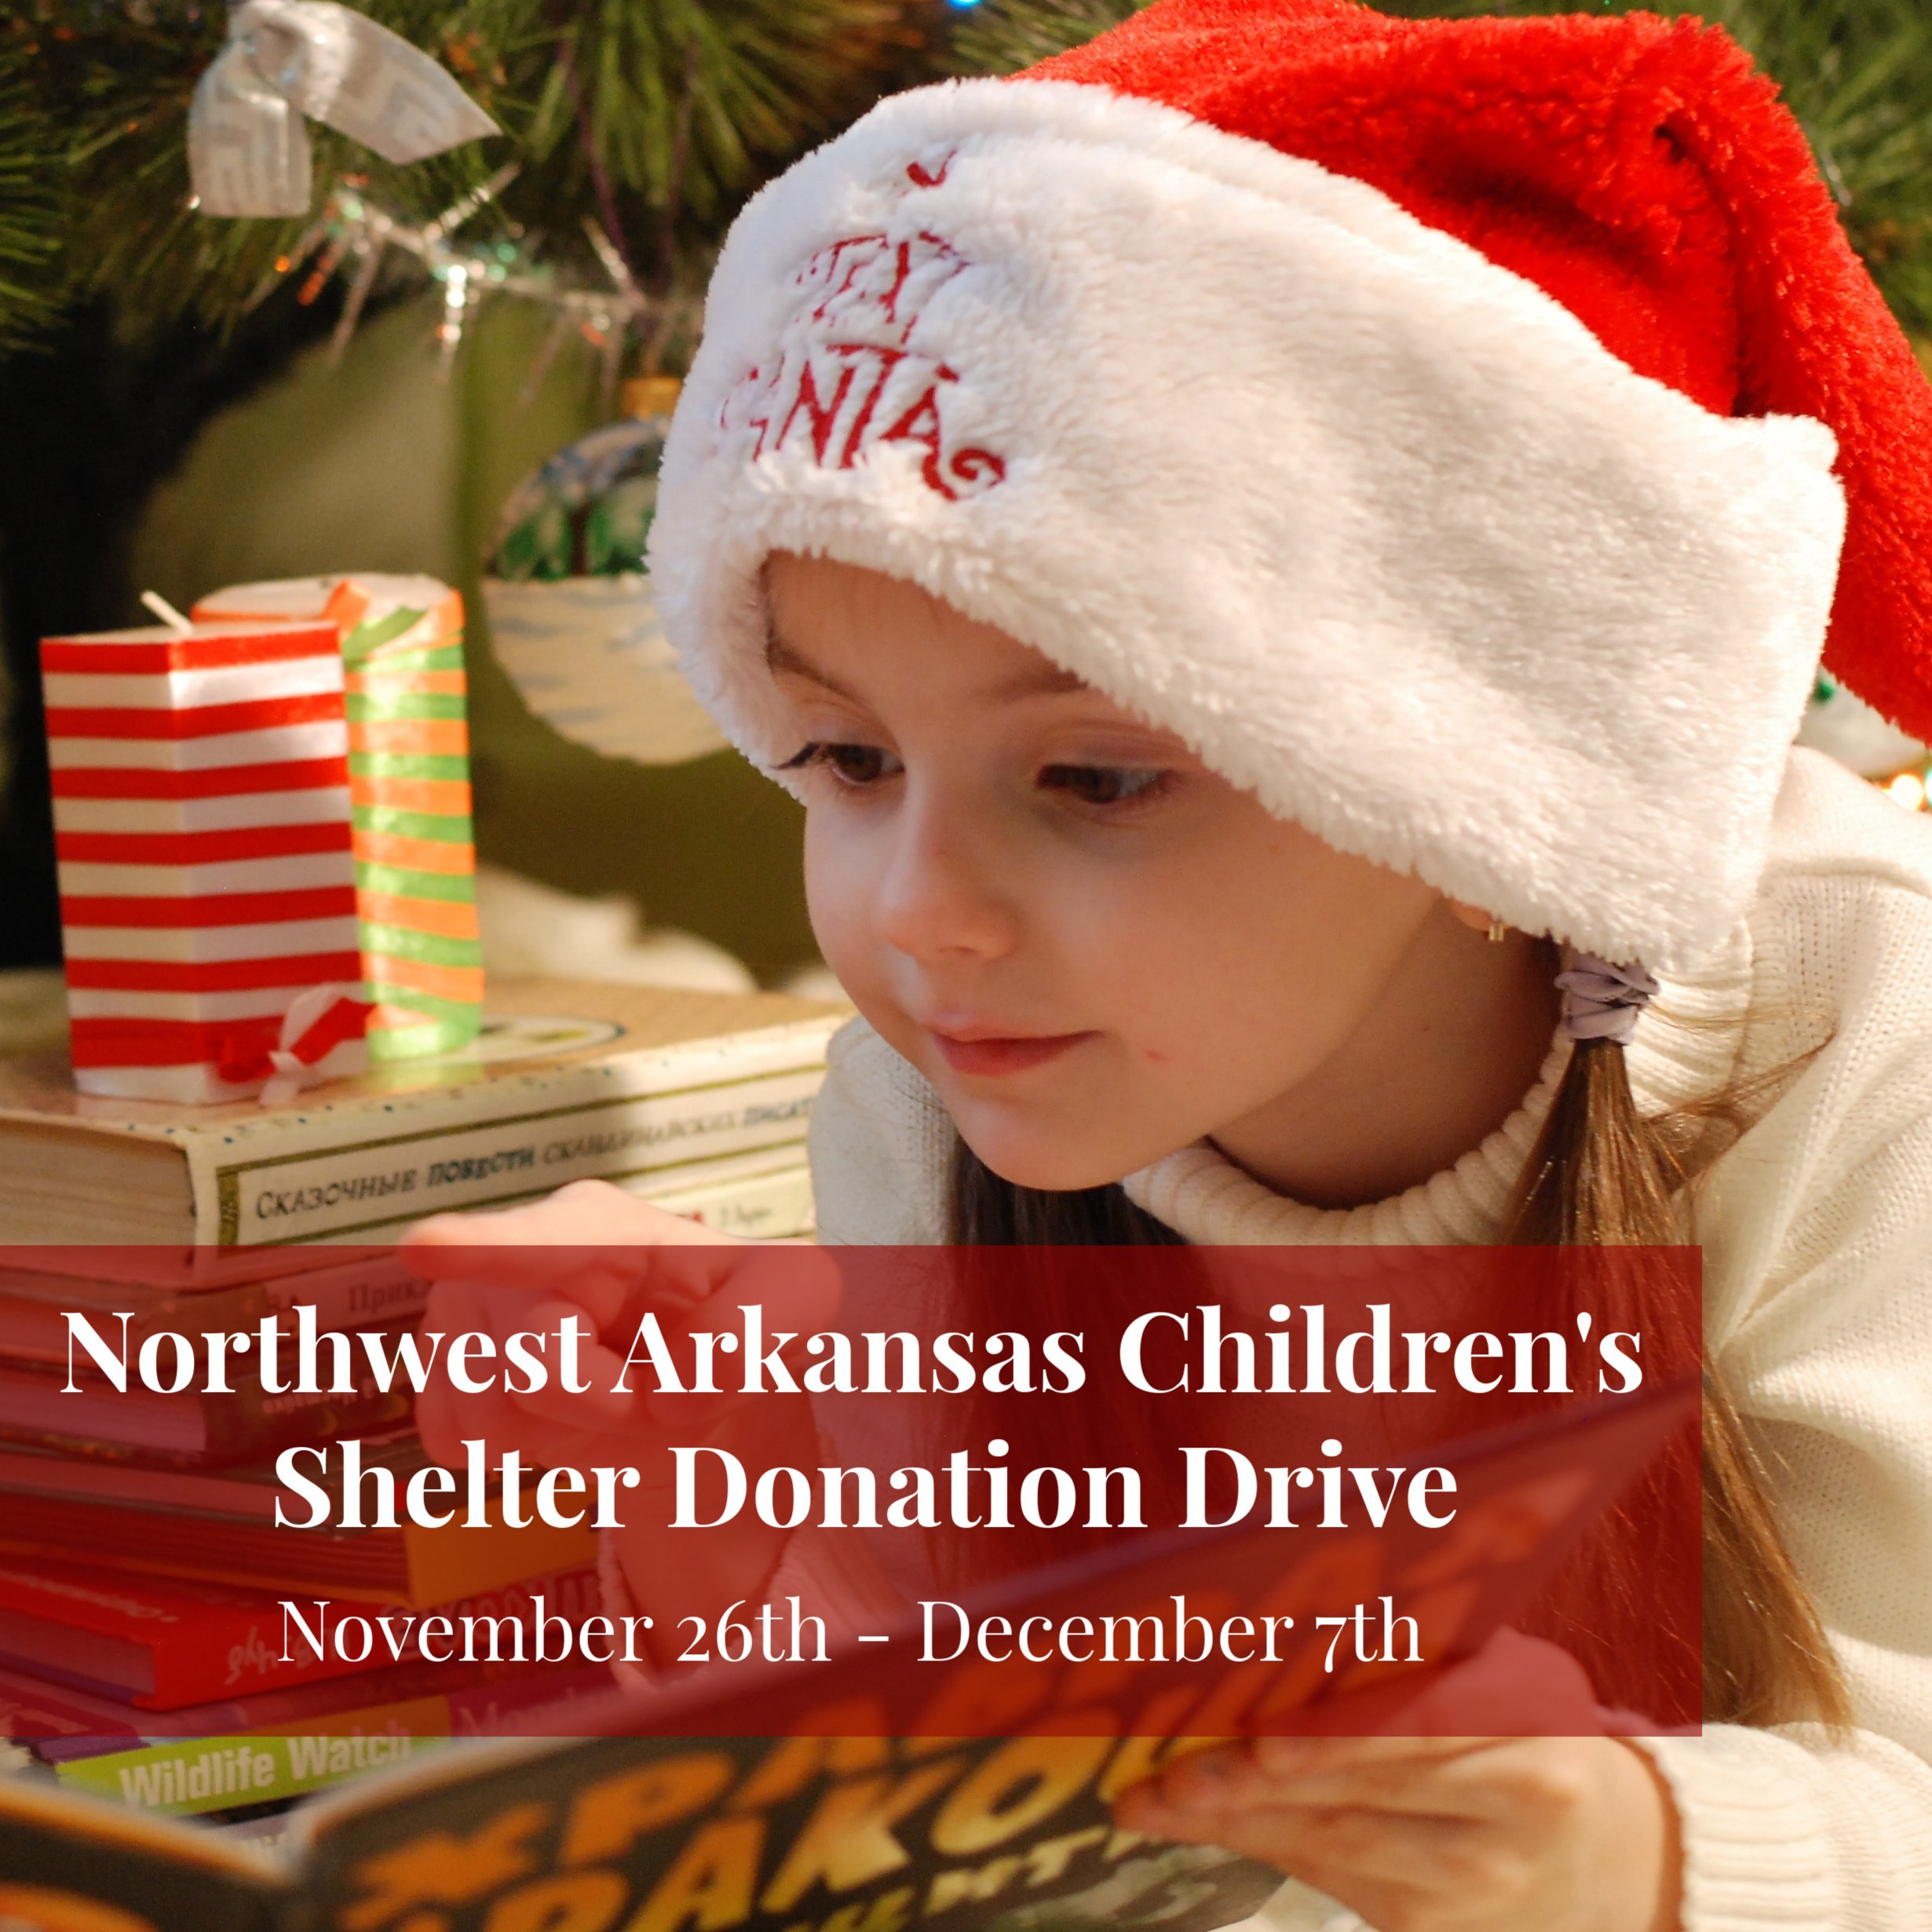 nwa childrens shelter drive